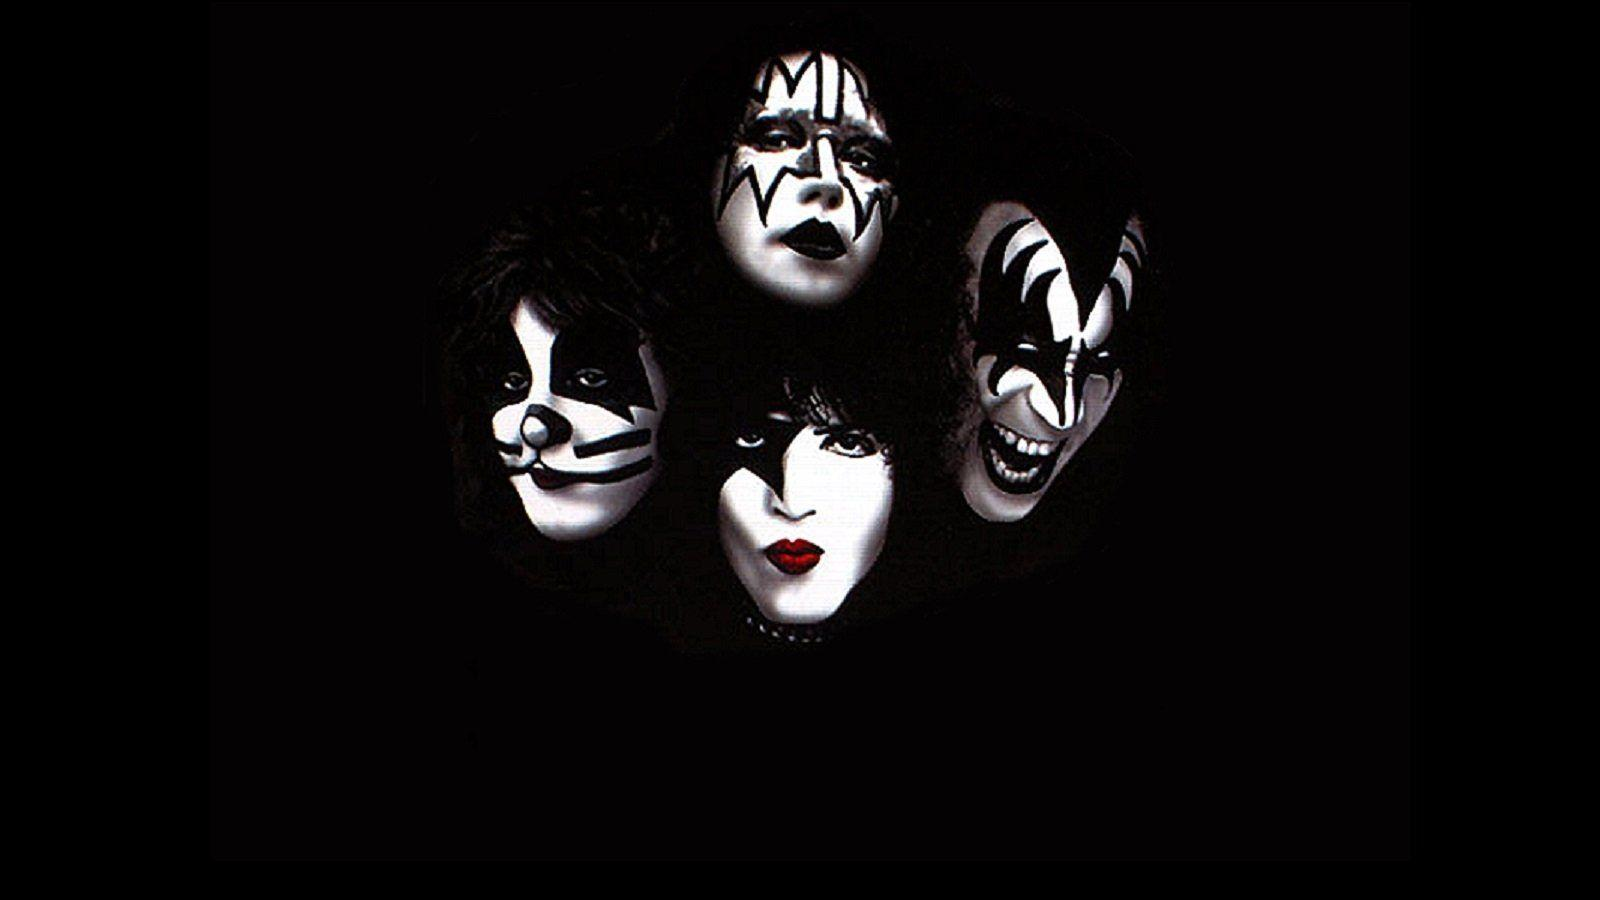 KISS Band Wallpapers   Wallpaper Cave 65 KISS HD Wallpapers   Backgrounds   Wallpaper Abyss